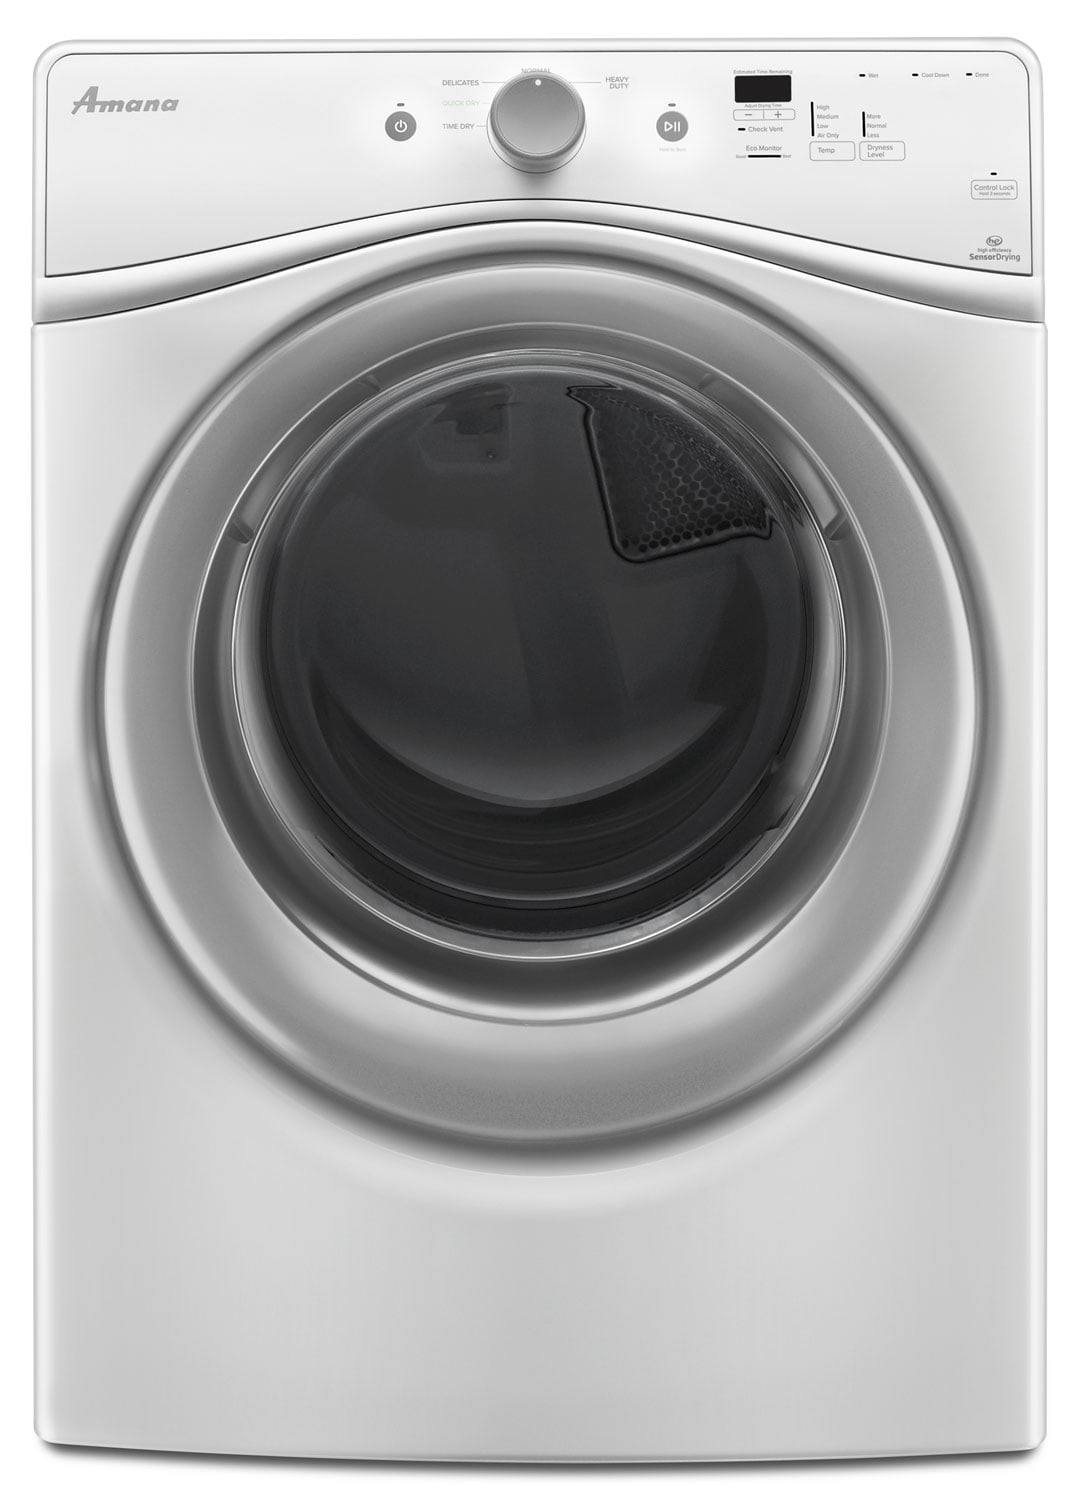 Amana White Electric Dryer (7.3 Cu. Ft.) - YNED5800DW